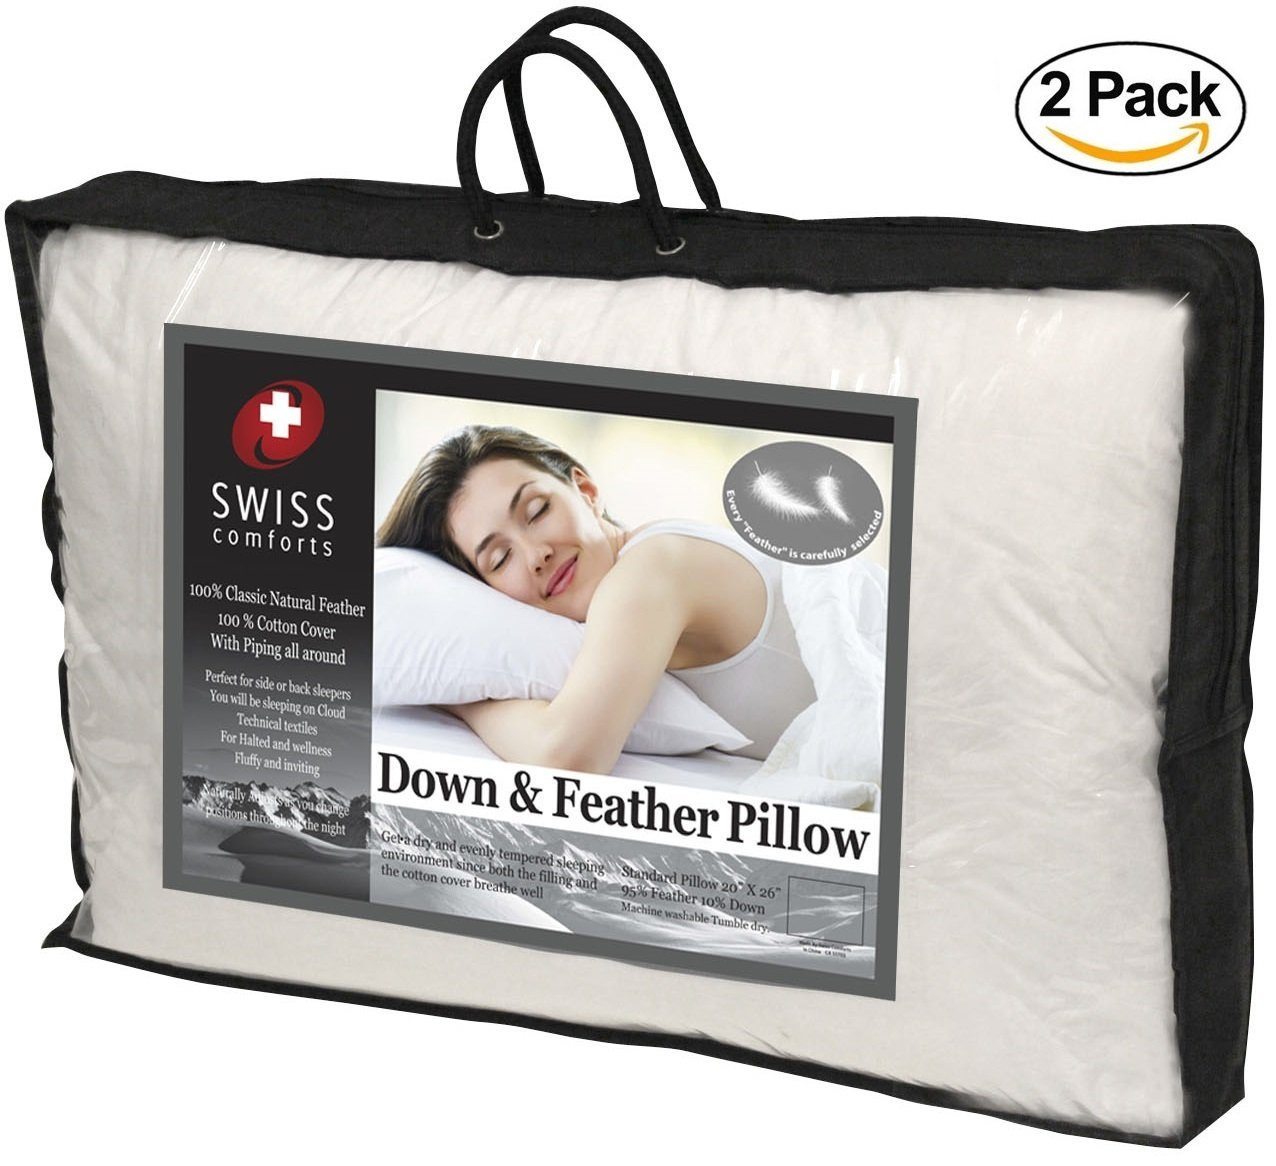 """Swiss Comforts Feather and White Down Pillows by [2 PACK] Hypoallergenic Luxury Soft & Fluffy Hotel Quality Pillows with 100% Cotton Tight-Weave Shell, Odor-Free King 20"""" X 36"""""""